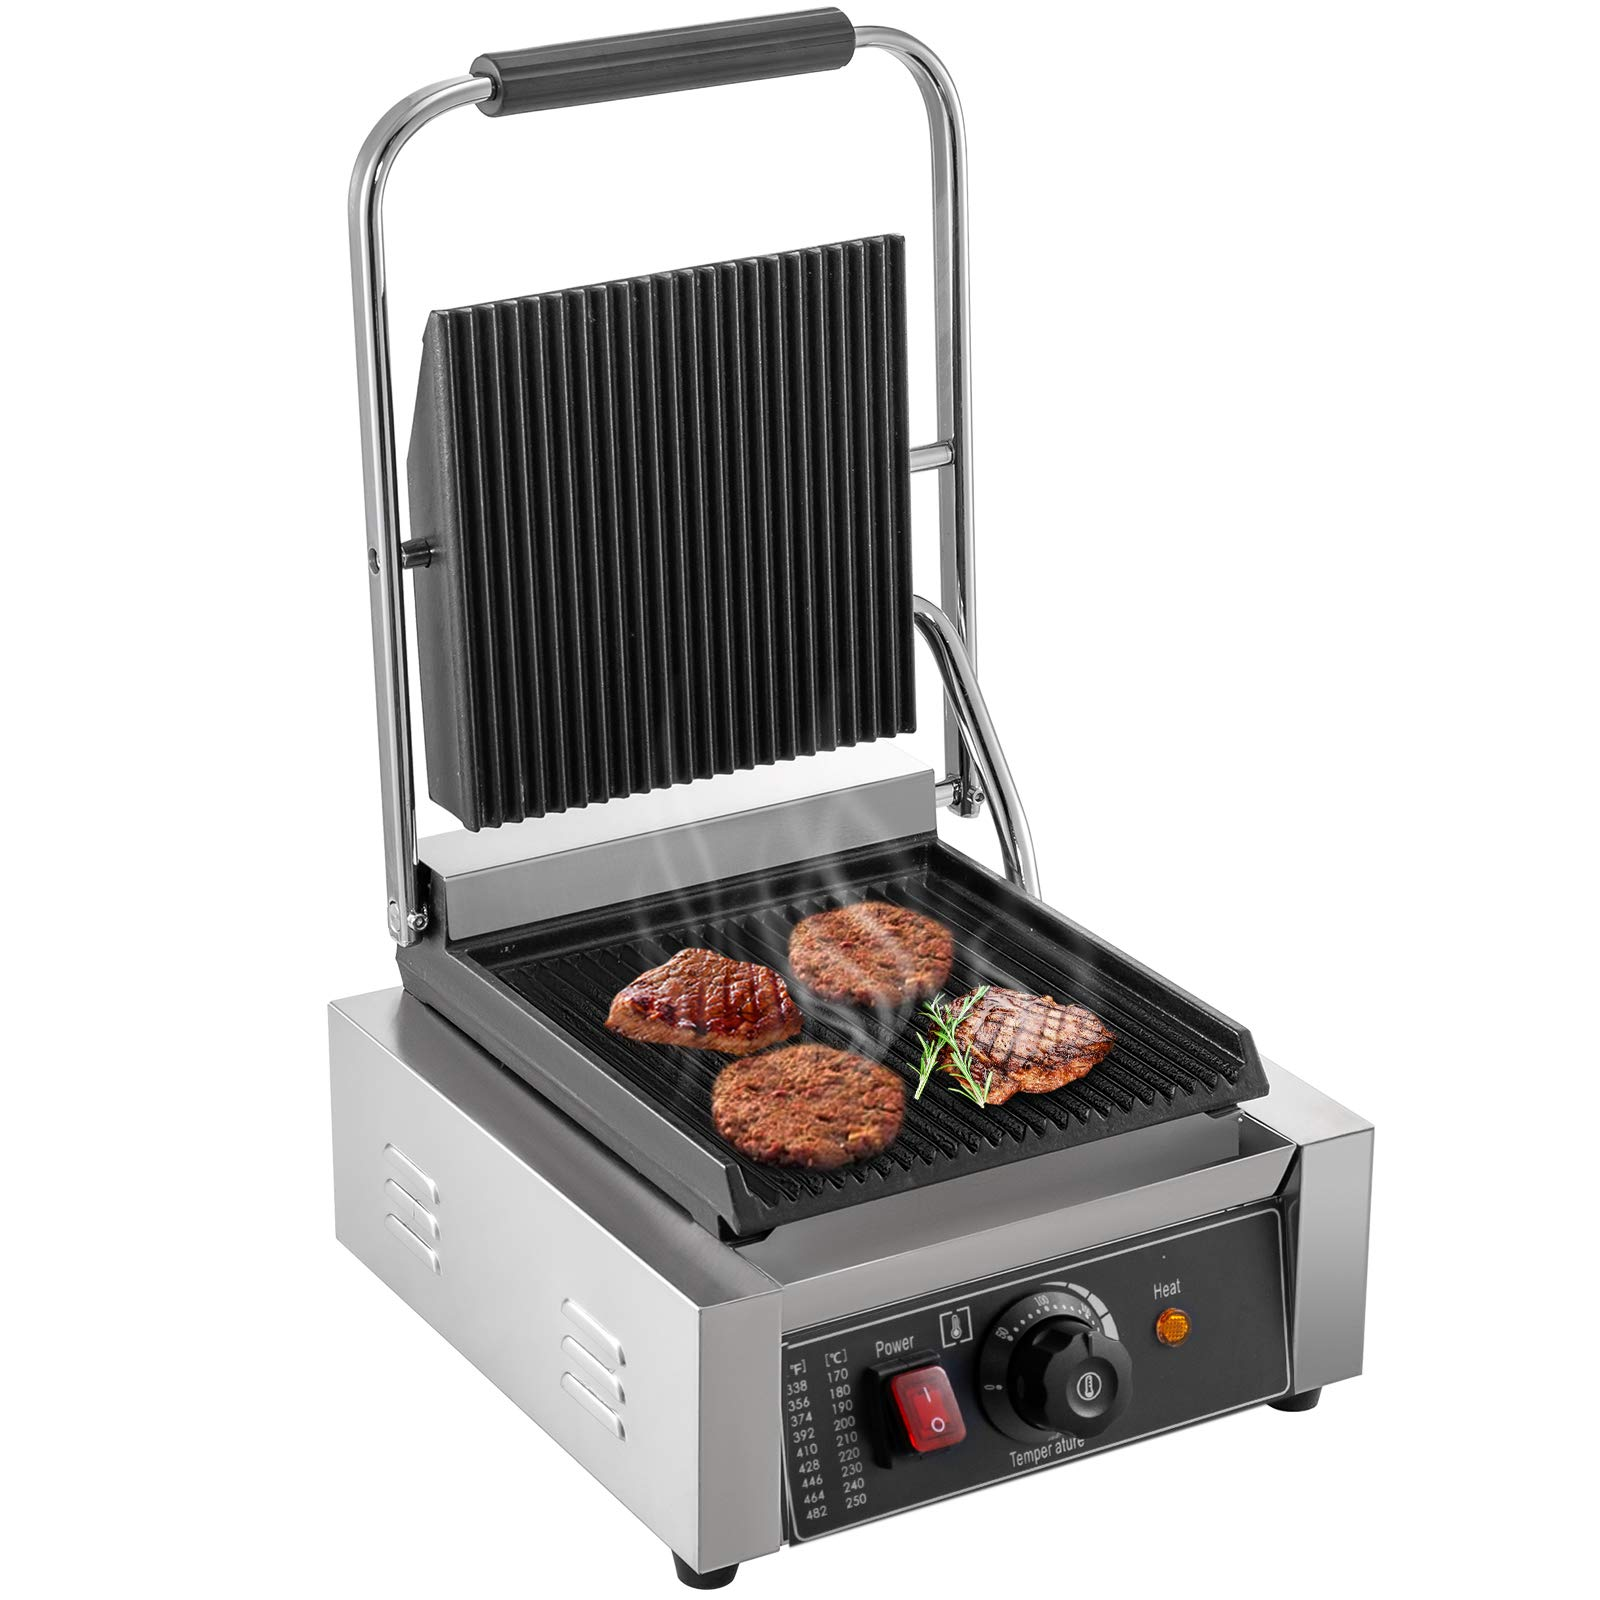 Happybuy 110V Commercial Sandwich Press Grill 1800W Electric Panini Maker Non-Stick 122°F-572°F Temp Control Full Grooved Plates for Hamburgers Steaks, 12″ x12.2″, Silver+Black